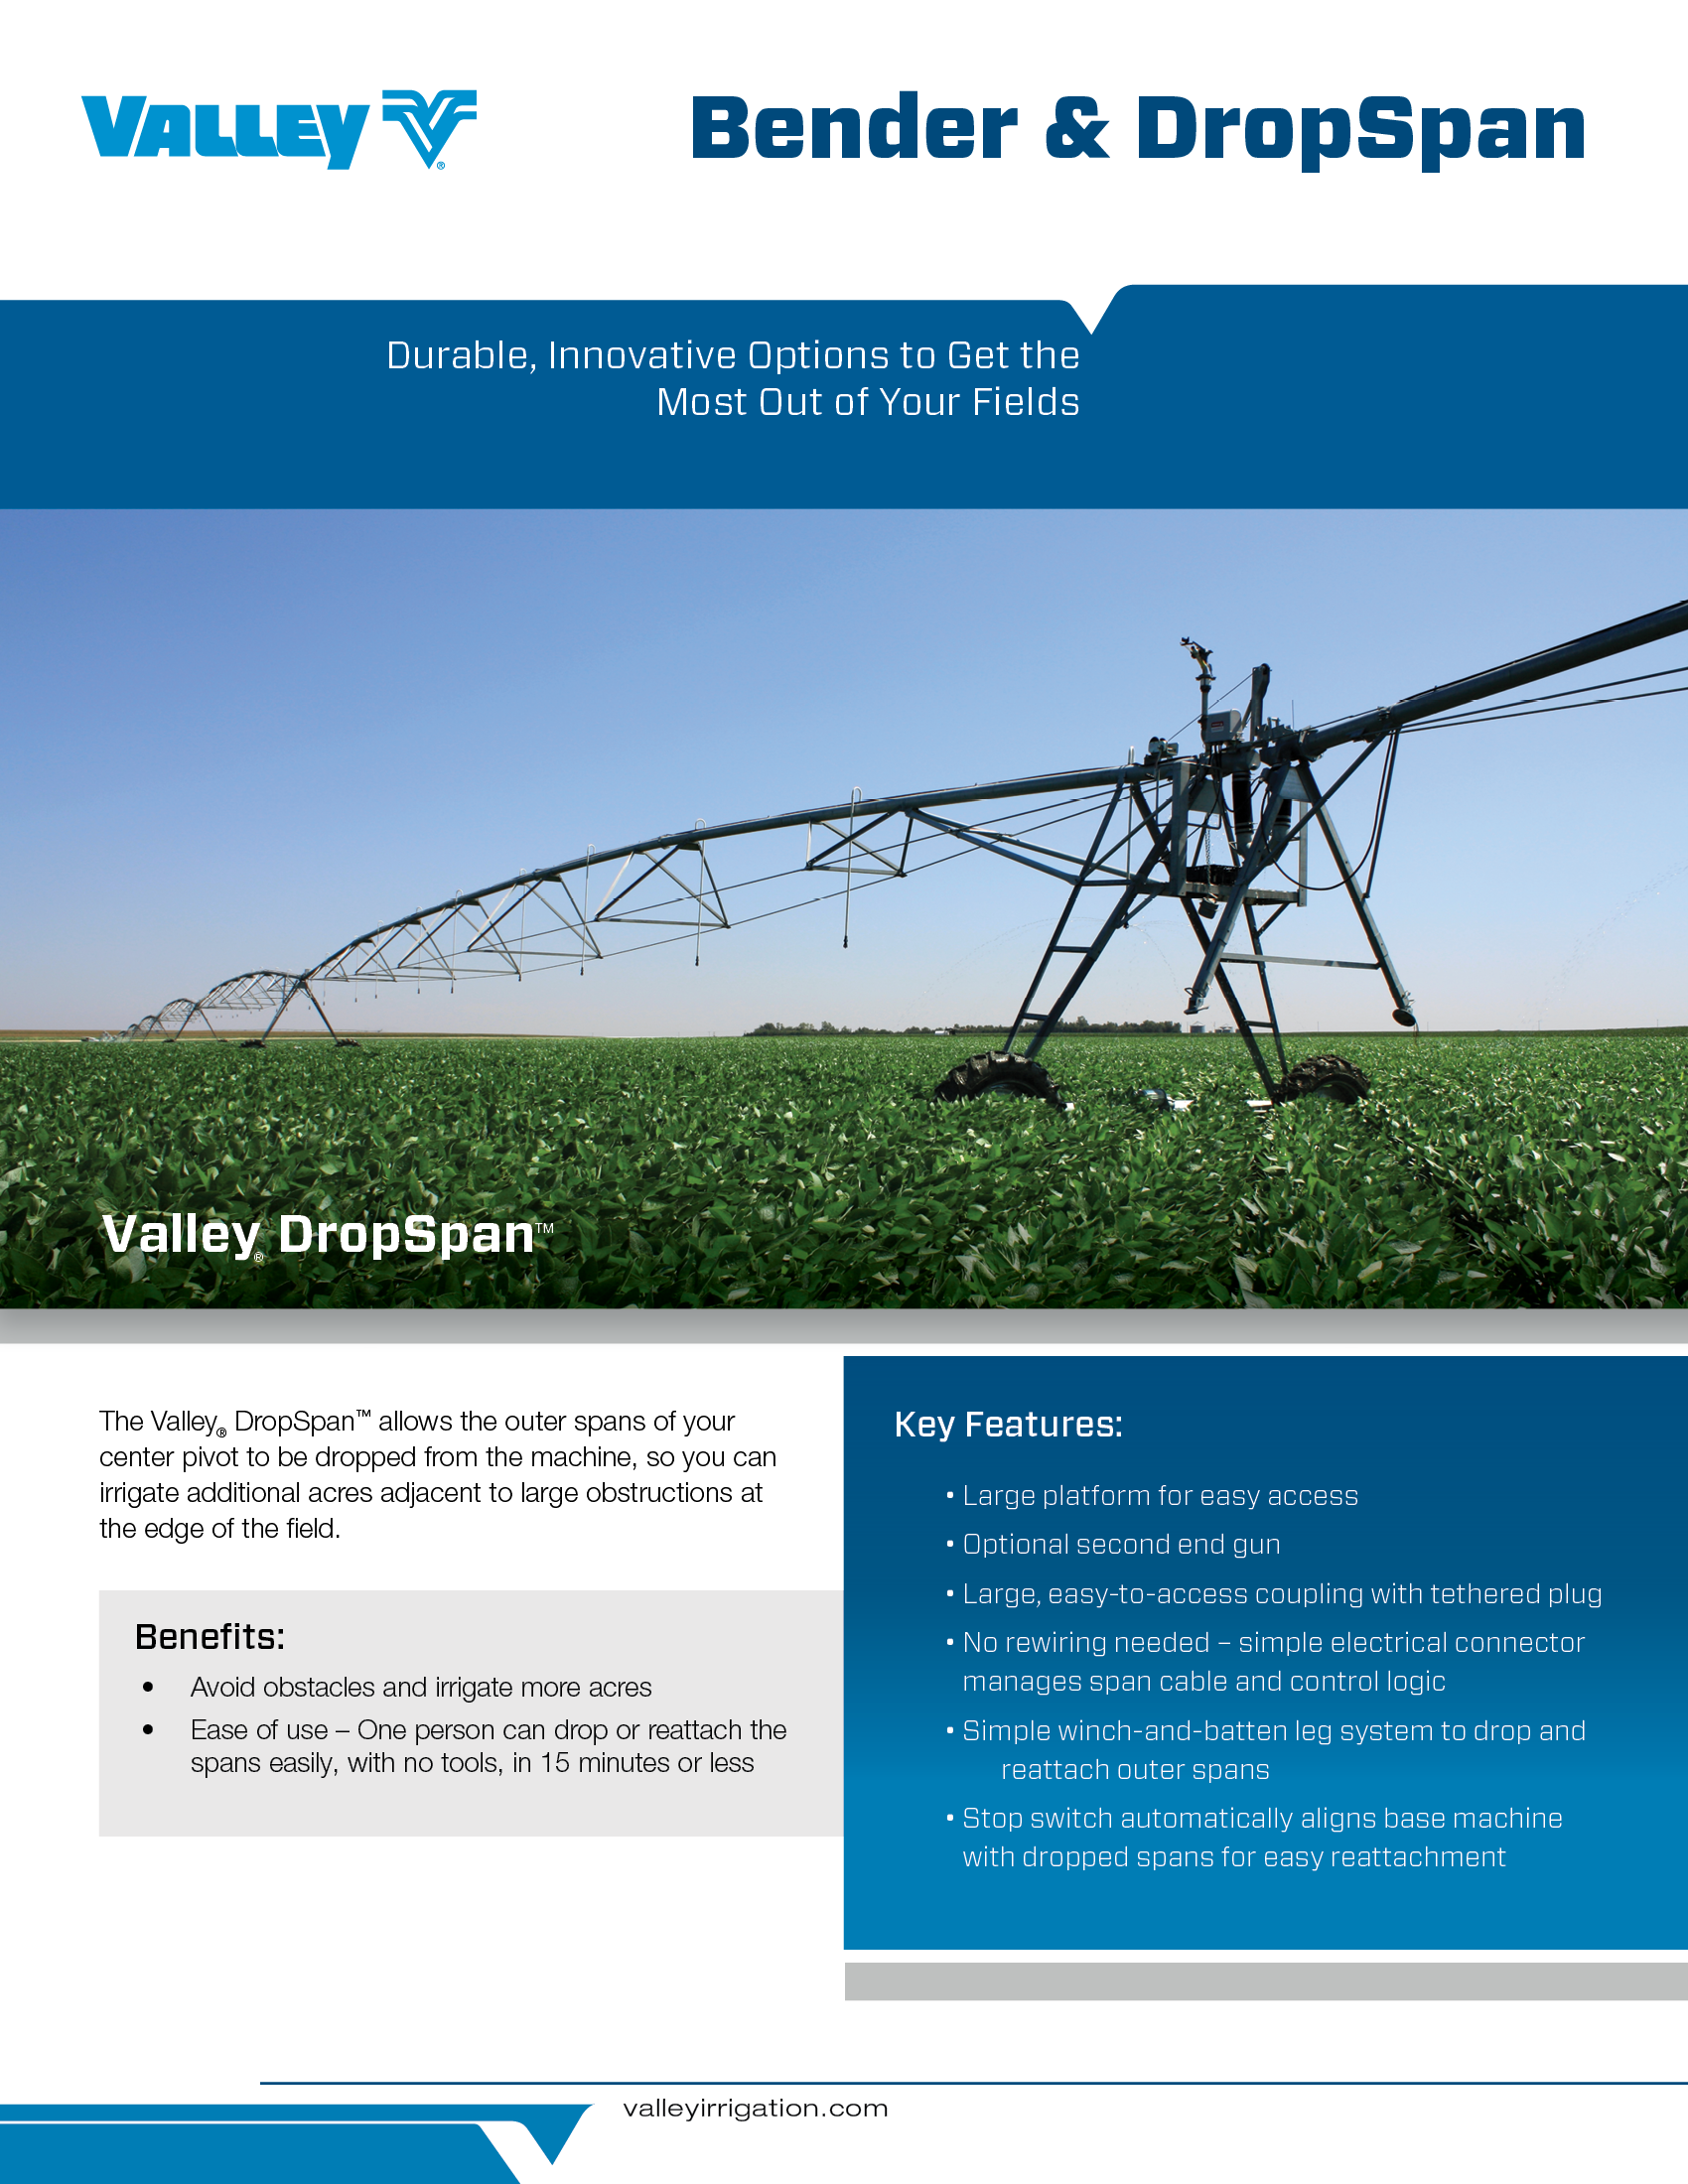 Bender30 And Bender160 Irrigation For Gaining Irrigated Land Valley Center Pivot Wiring Diagrams Product Catalog Cover